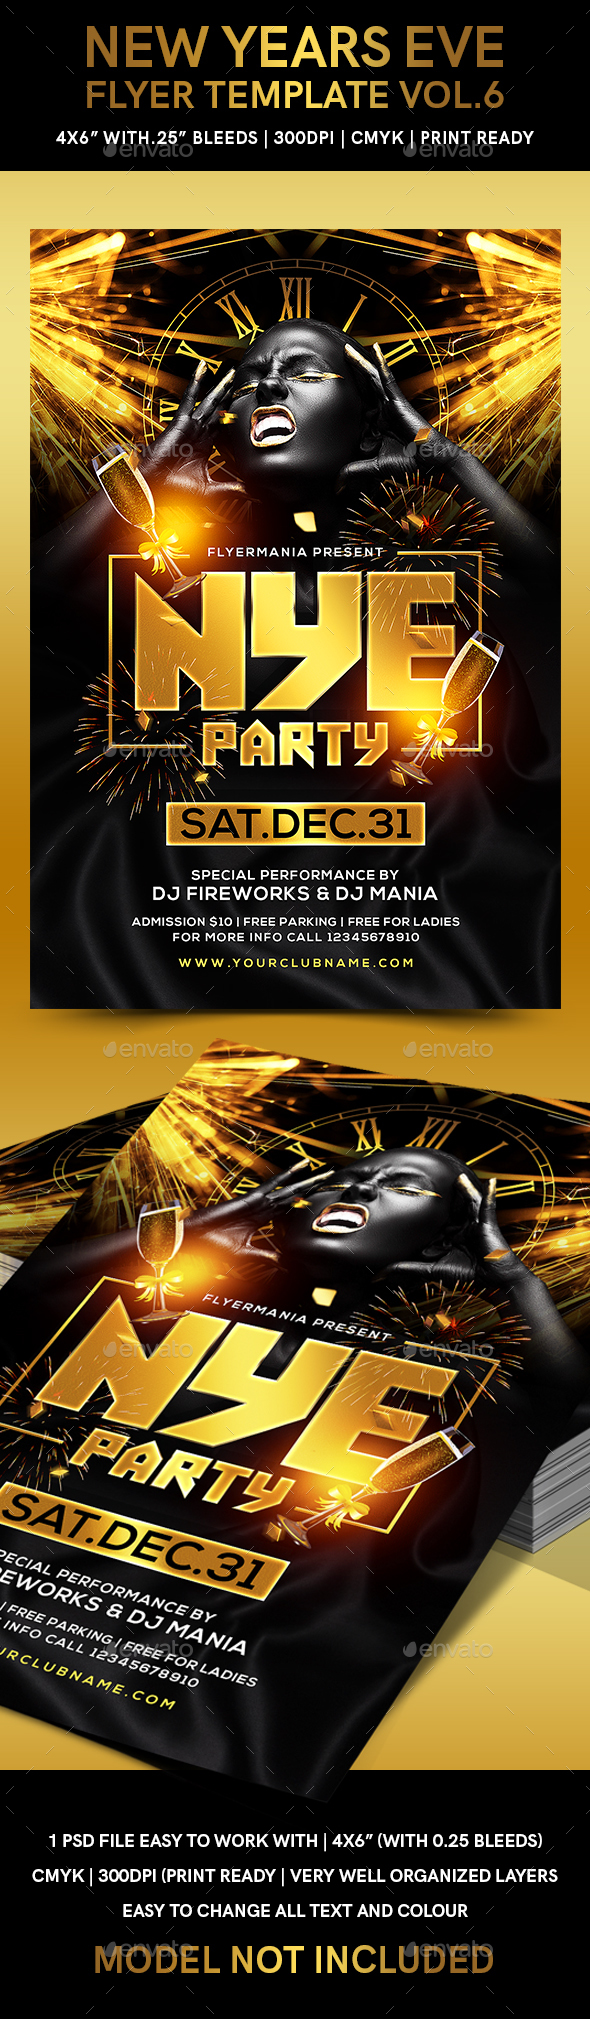 New Years Eve Flyer Template Vol.6